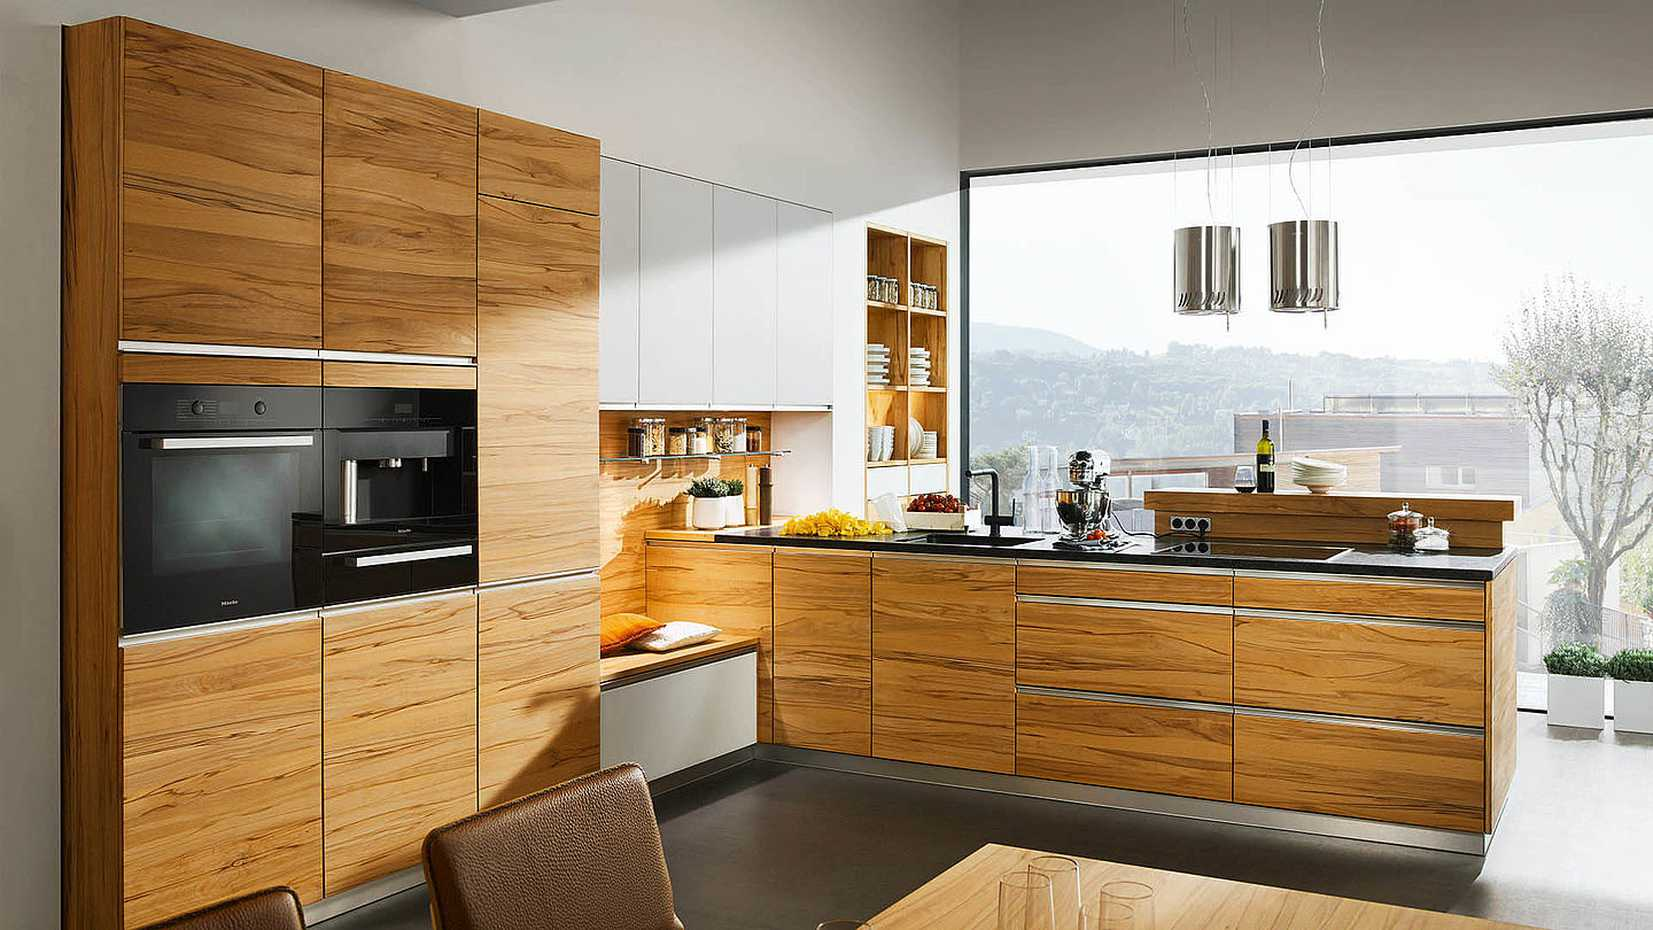 Linee Kitchen by Team 7 product image 3